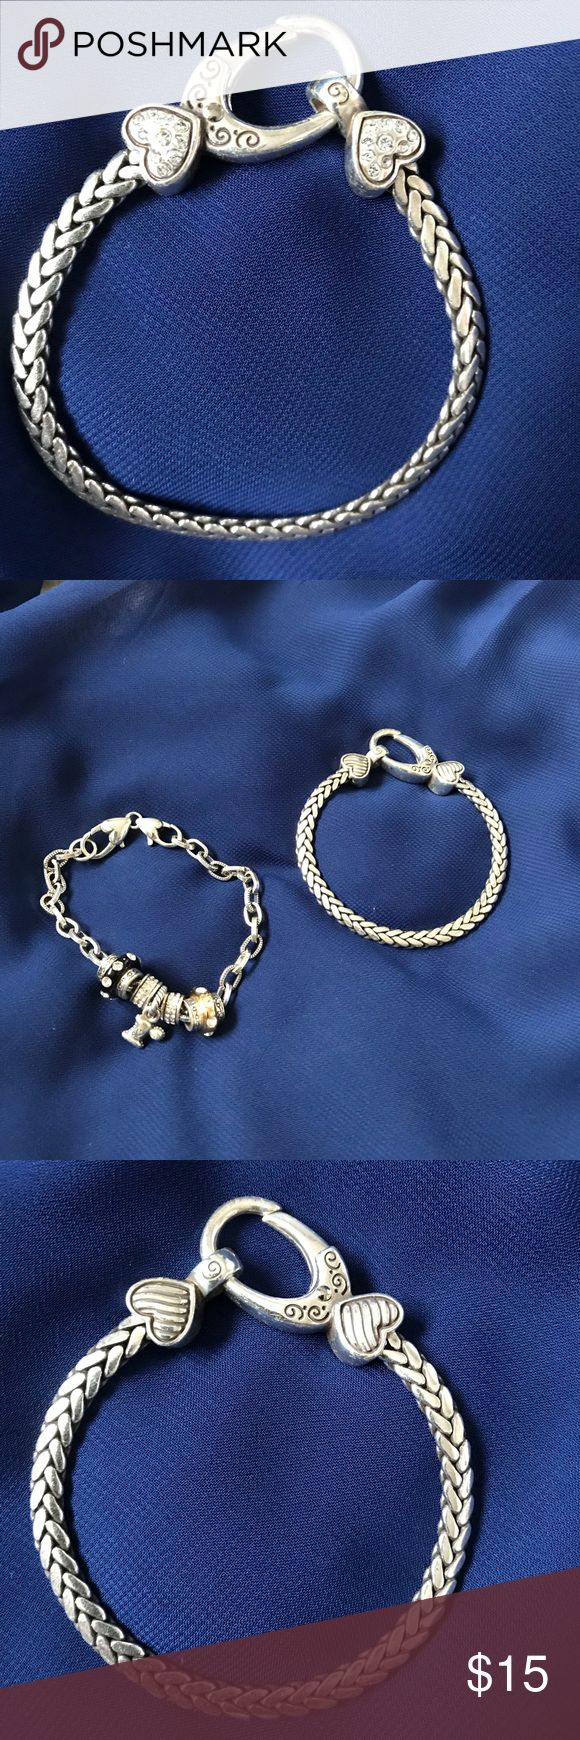 Women's Brighton Bracelet Women's Brighton Bracelet. In great condition only worn once. Will accept all reasonable offers! Please no low balls. 😊 All orders shipped in 24 hrs. Or less. Brighton Jewelry Bracelets